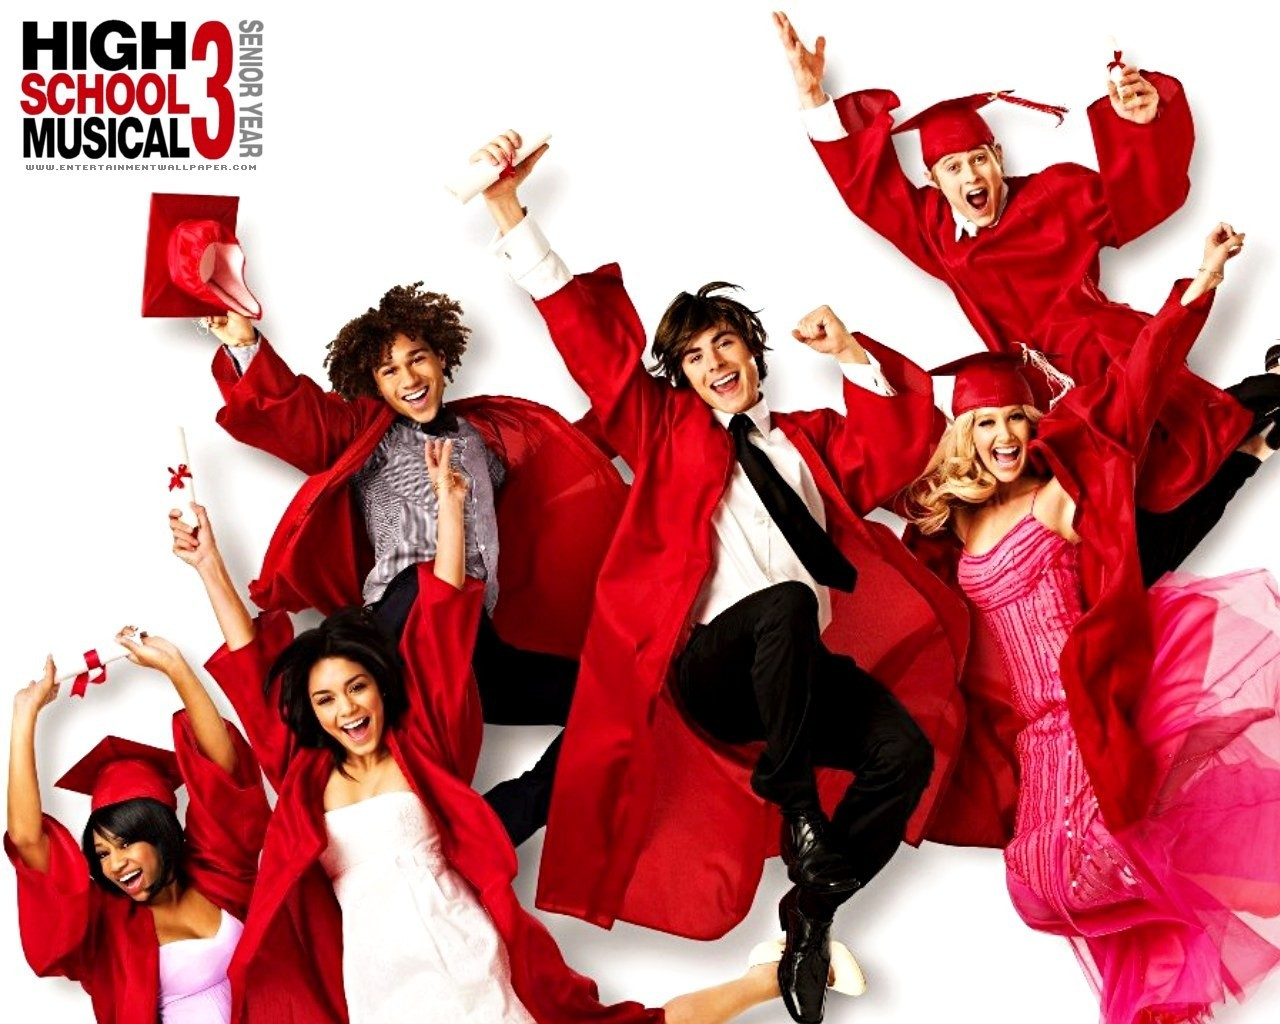 High School Musical   High School Musical 3 Wallpaper 7064667 1280x1024